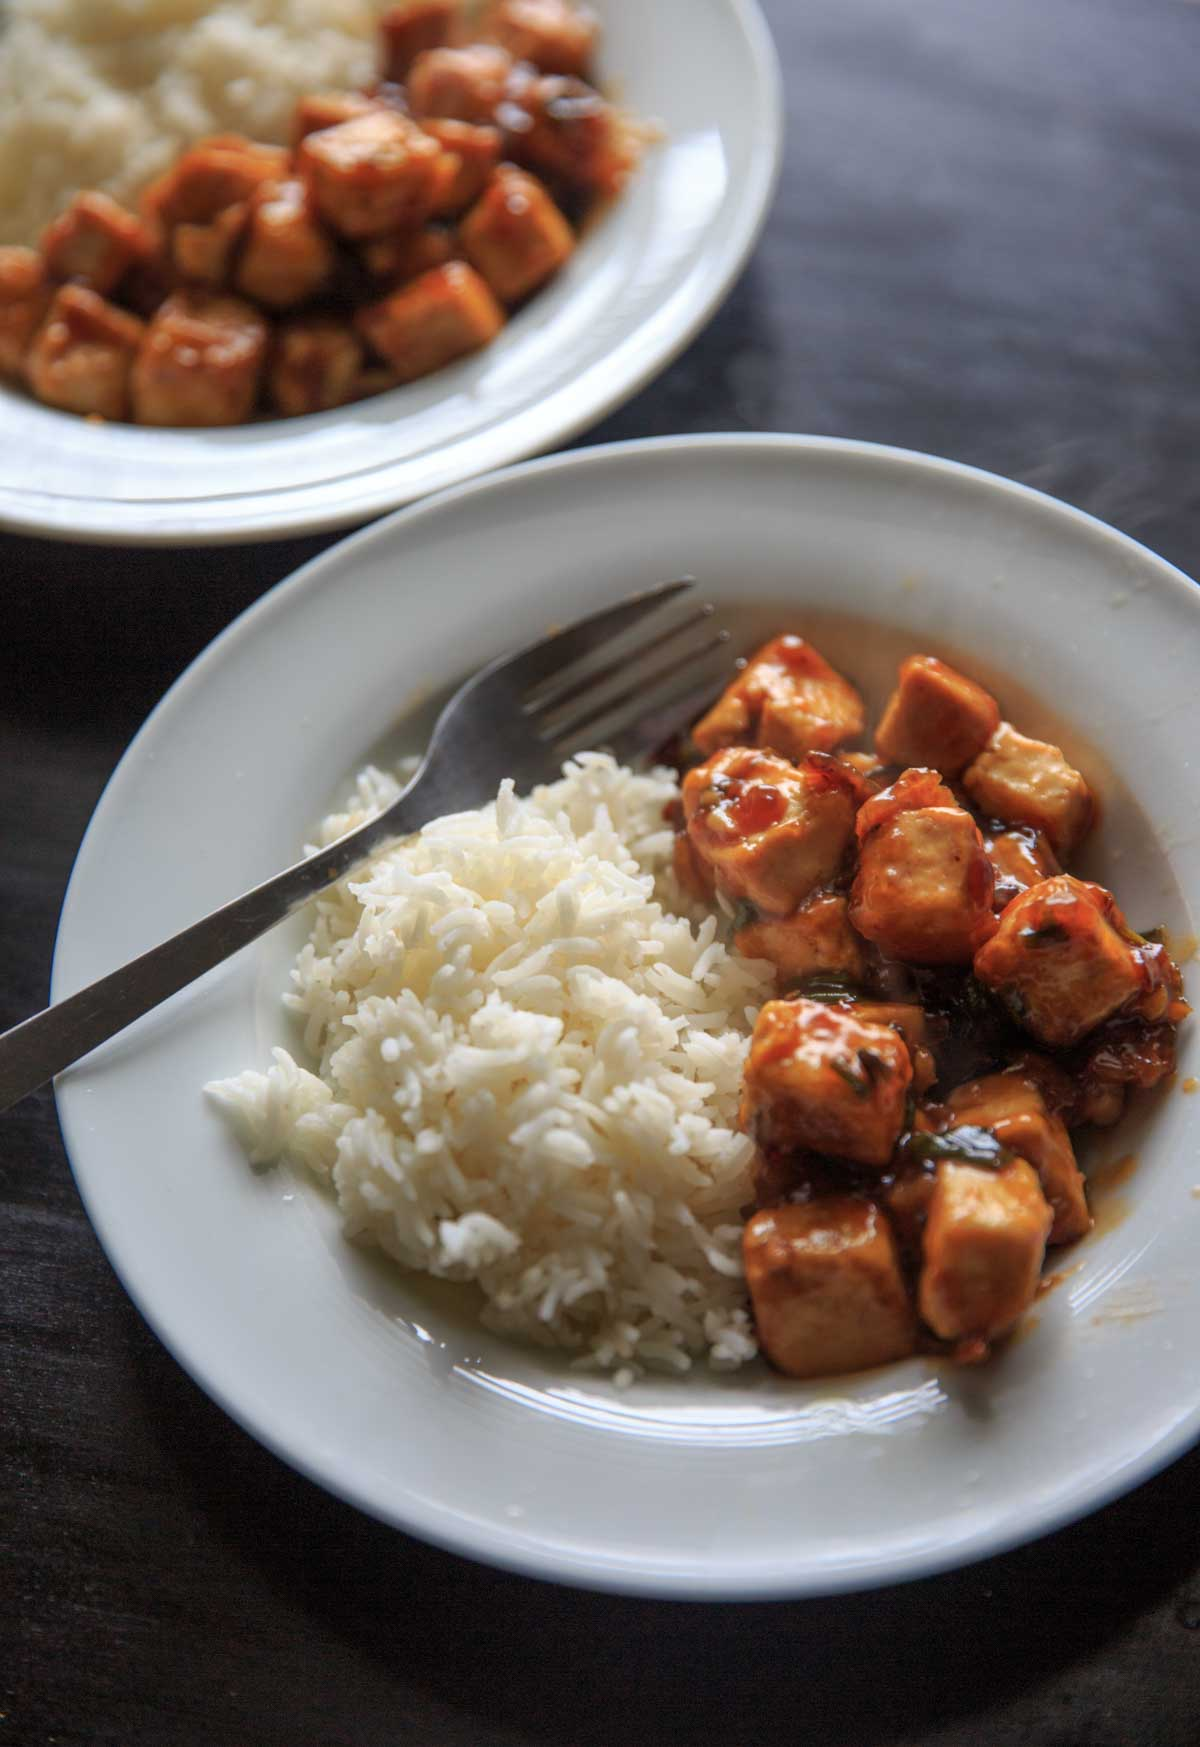 General Tso's Tofu from the Chloe Flavor Cookbook - serve with rice or quinoa and top with sesame seeds